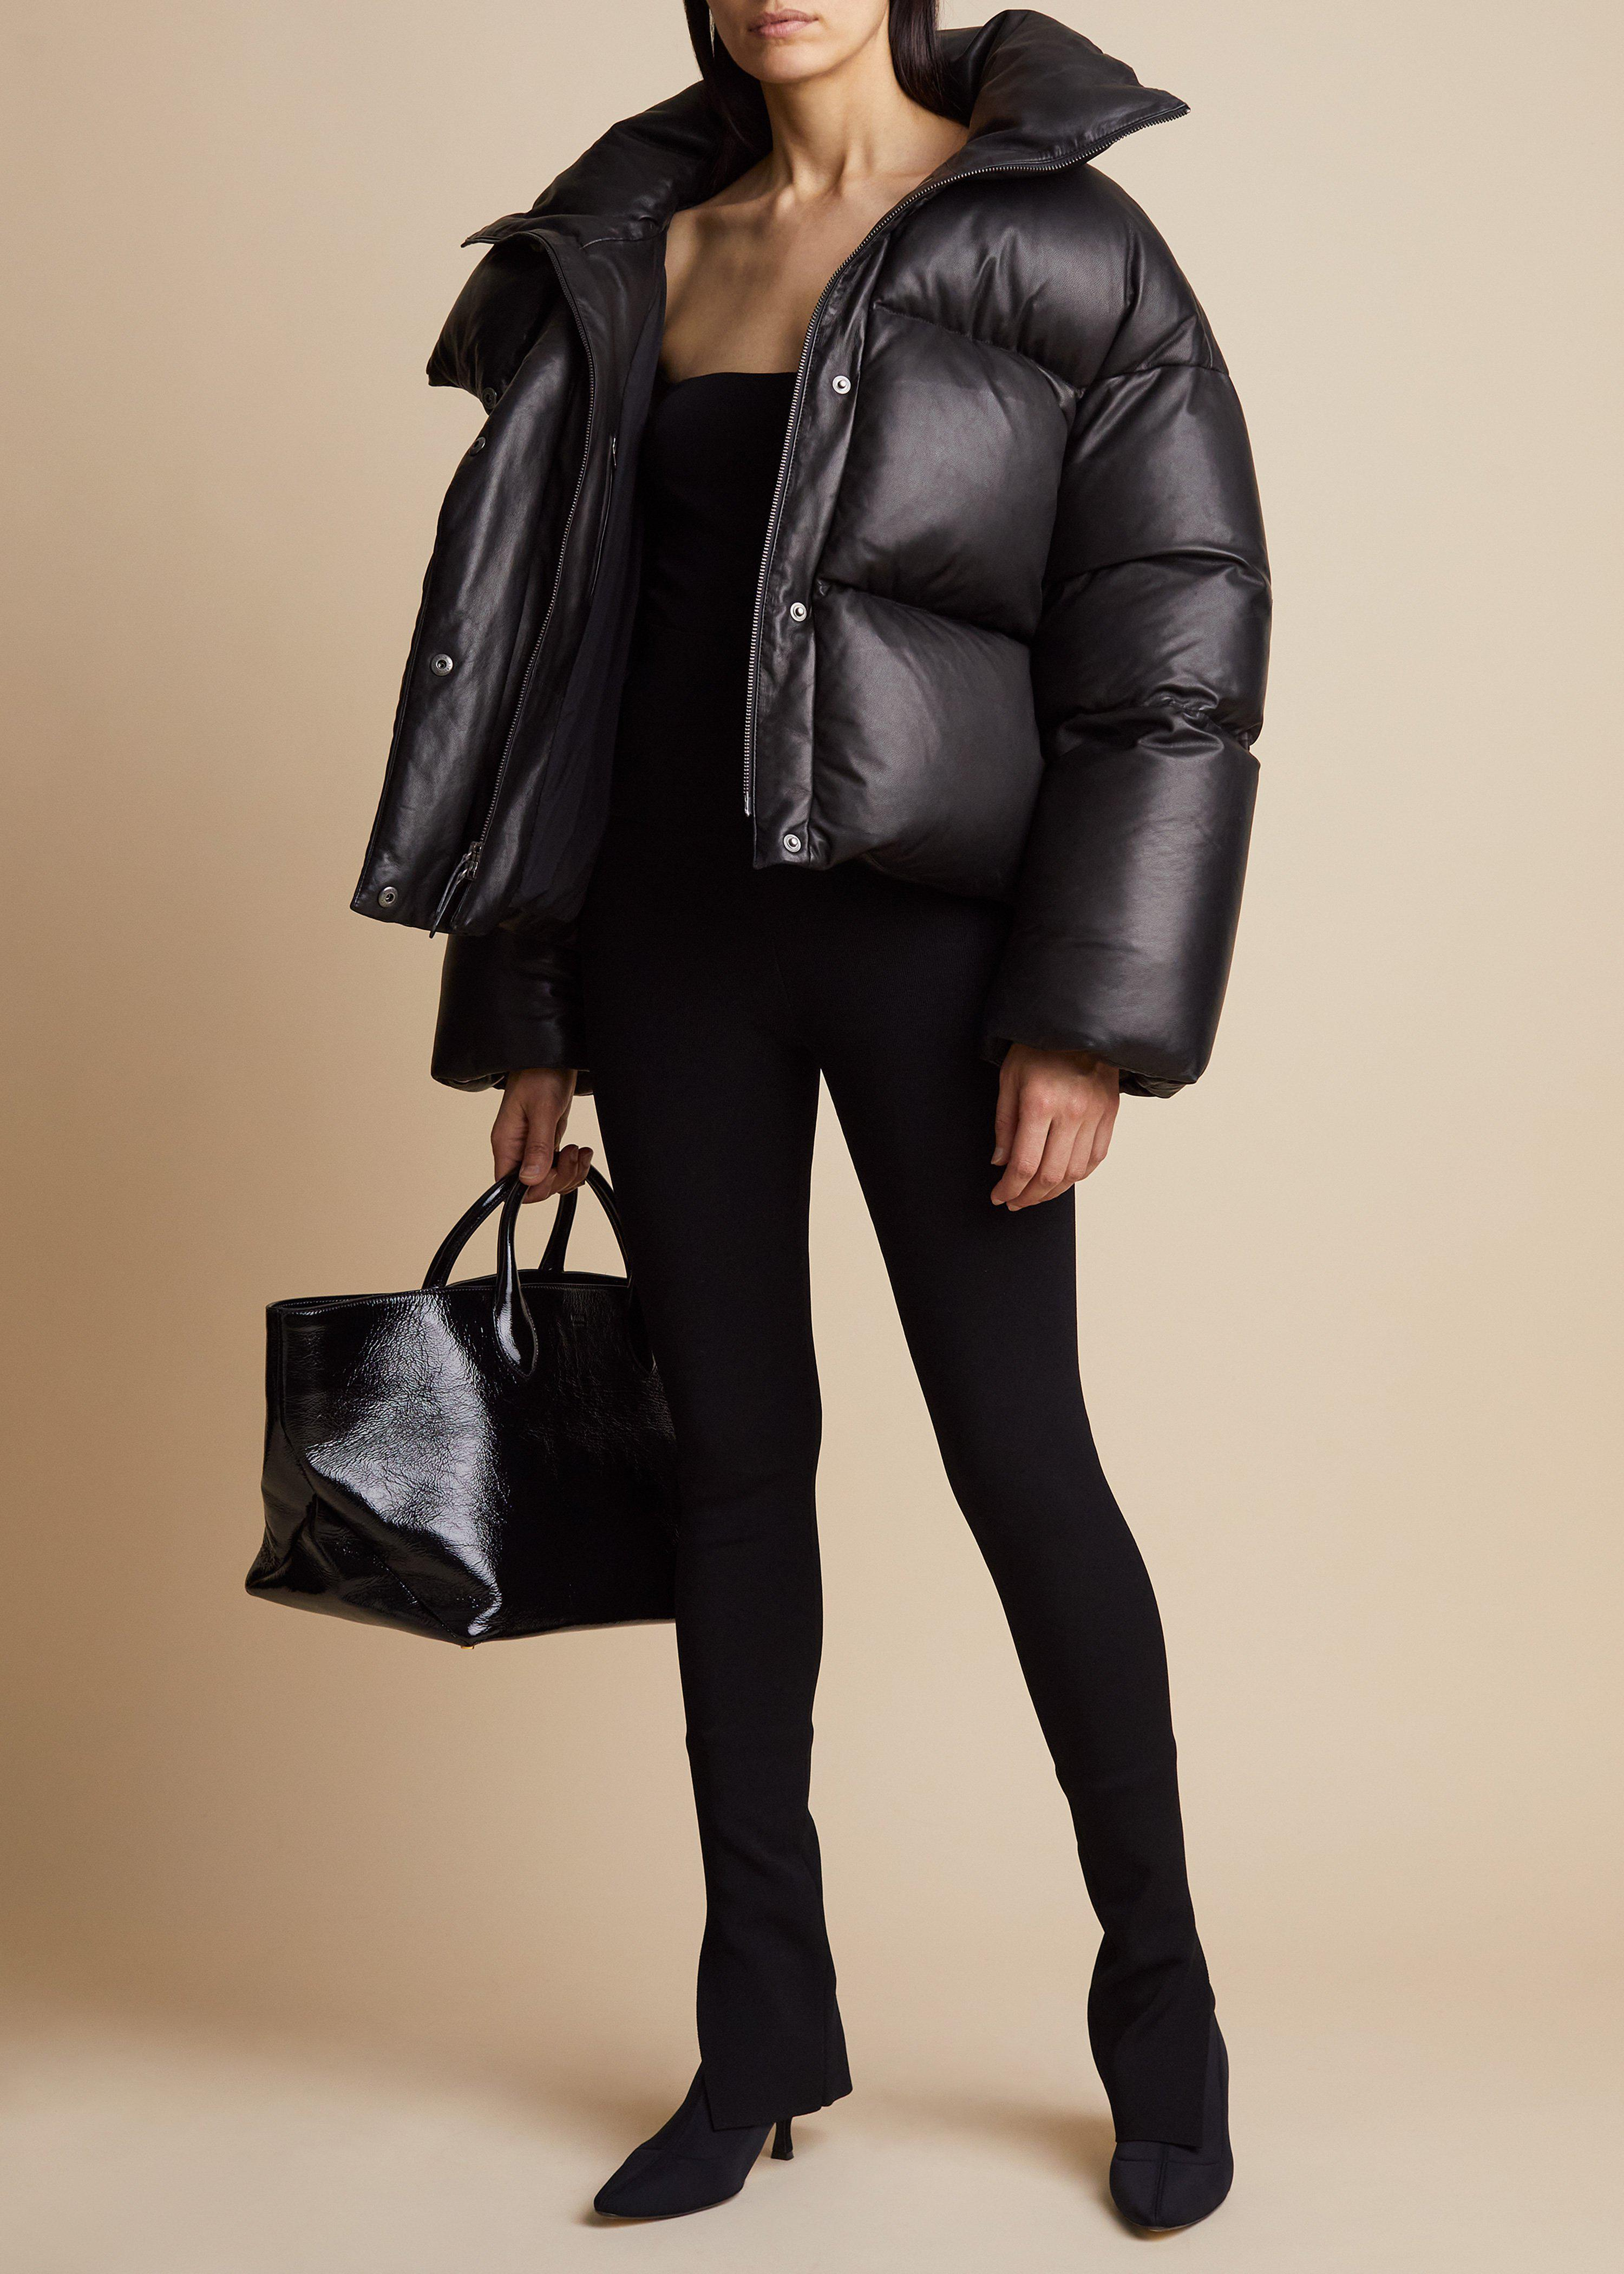 The Raphael Puffer Jacket in Black Leather